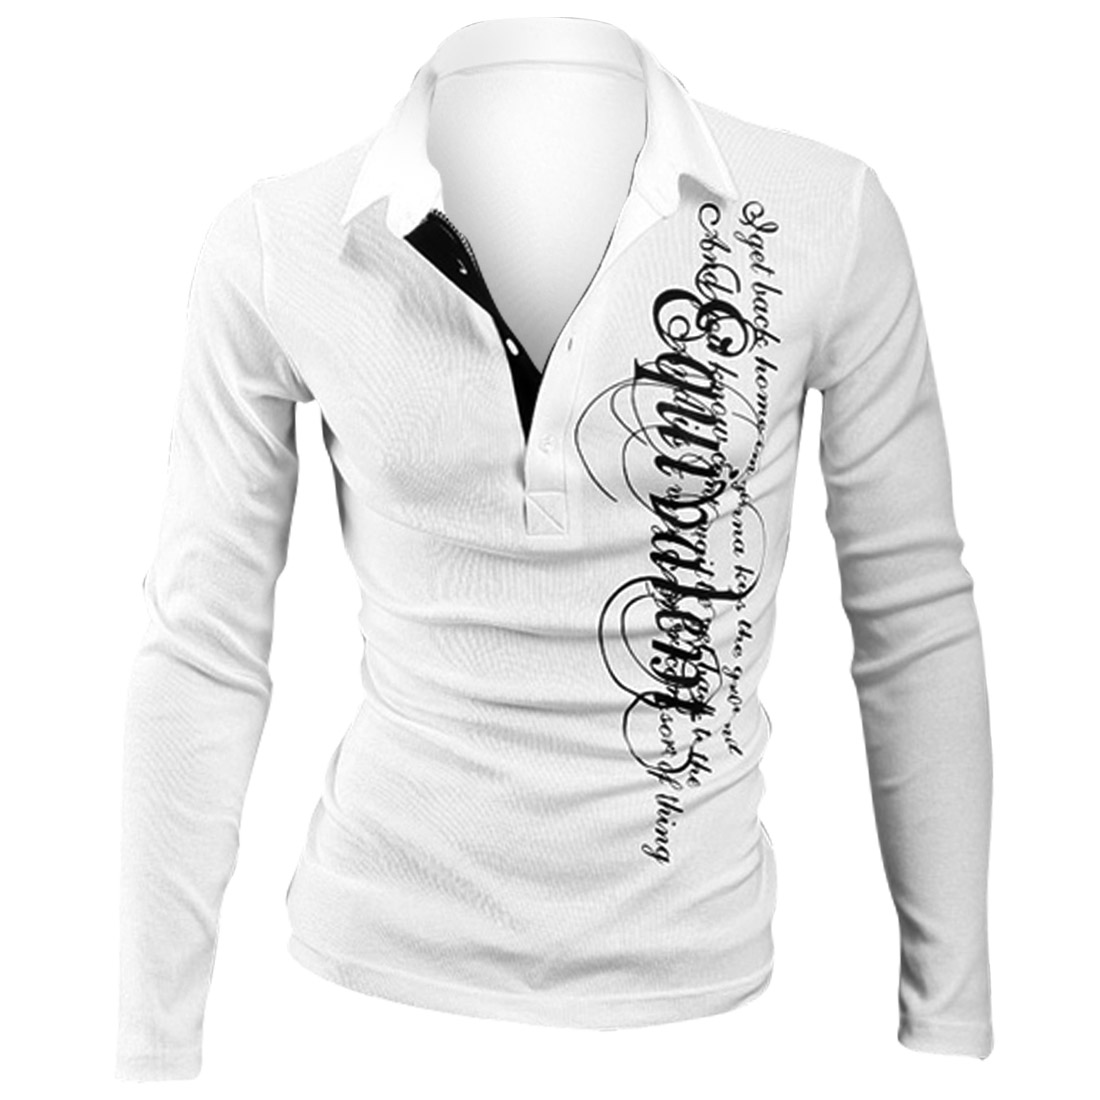 Man Convertible Collar Long-sleeved Letter Prints White Polo Shirt M